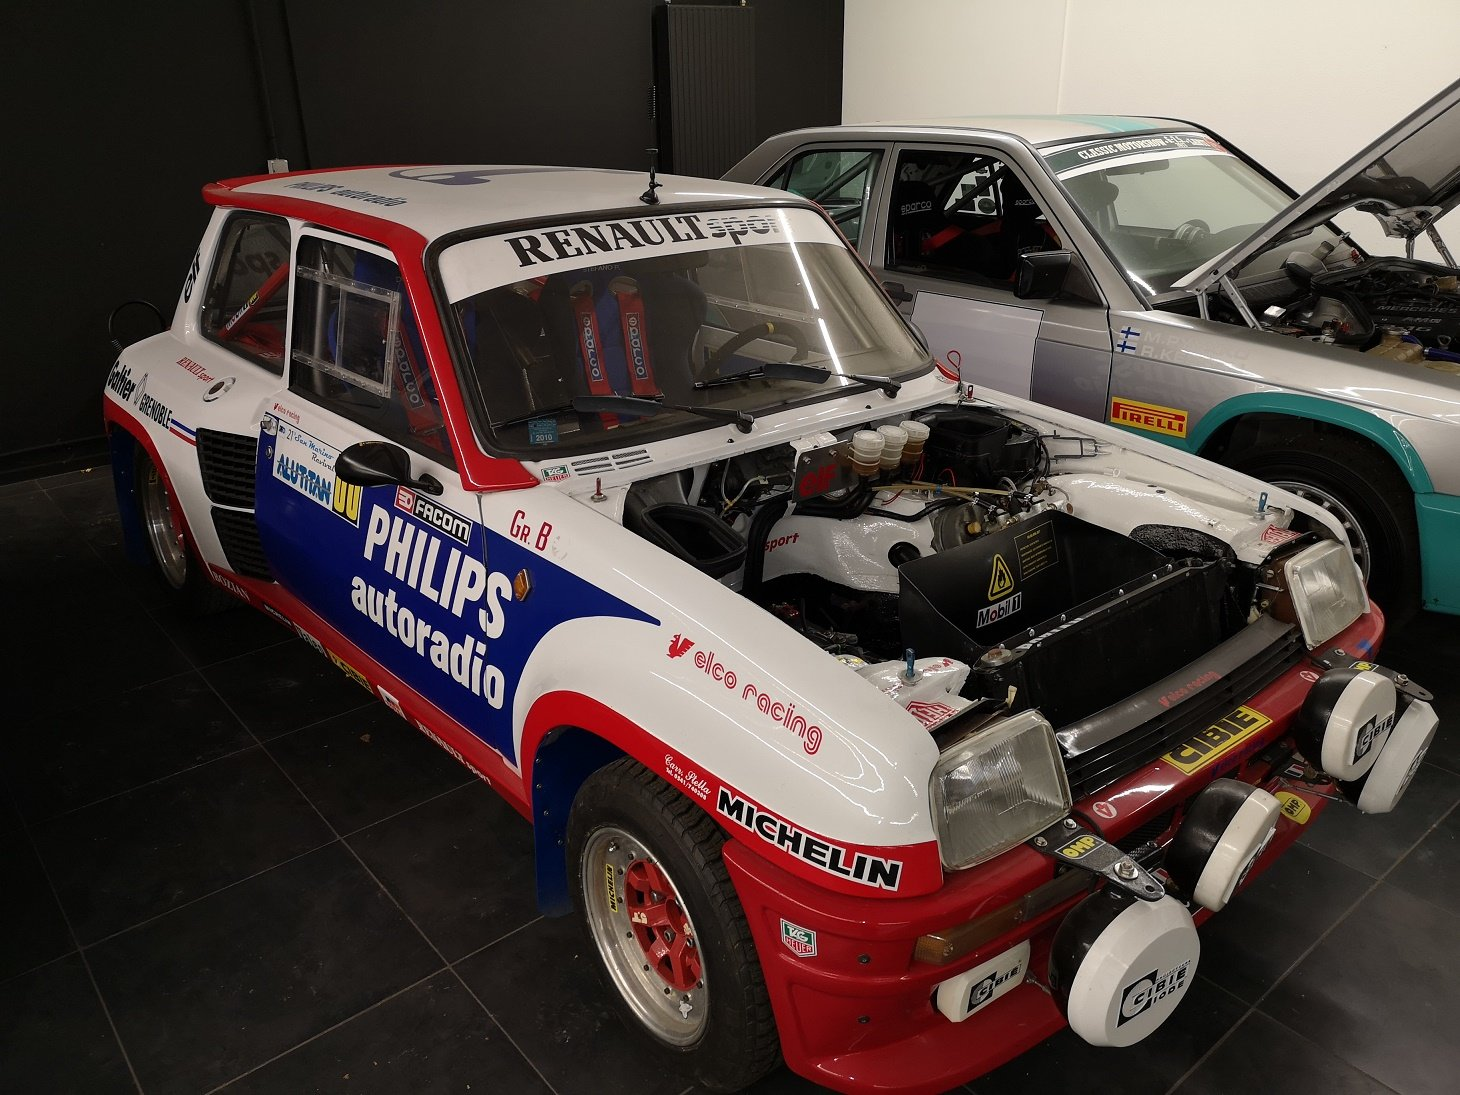 1981 R5 TURBO 1 de course For Sale (picture 2 of 6)